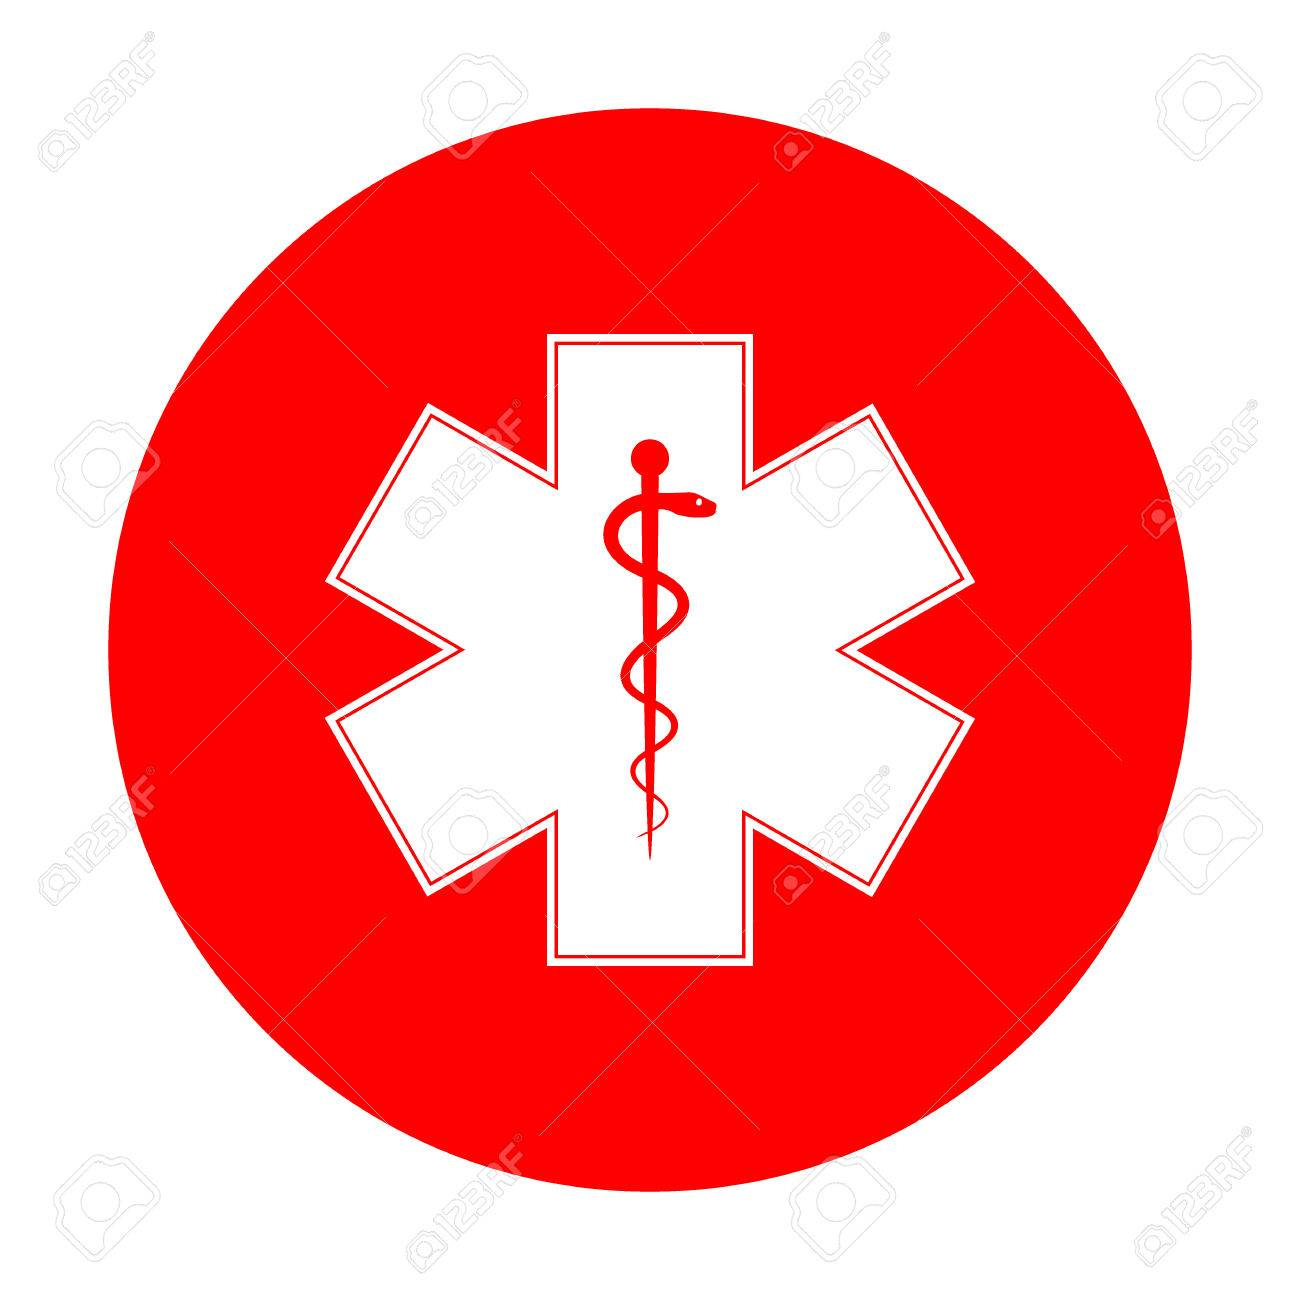 Medical Symbol Of The Emergency Or Star Of Life White Icon On